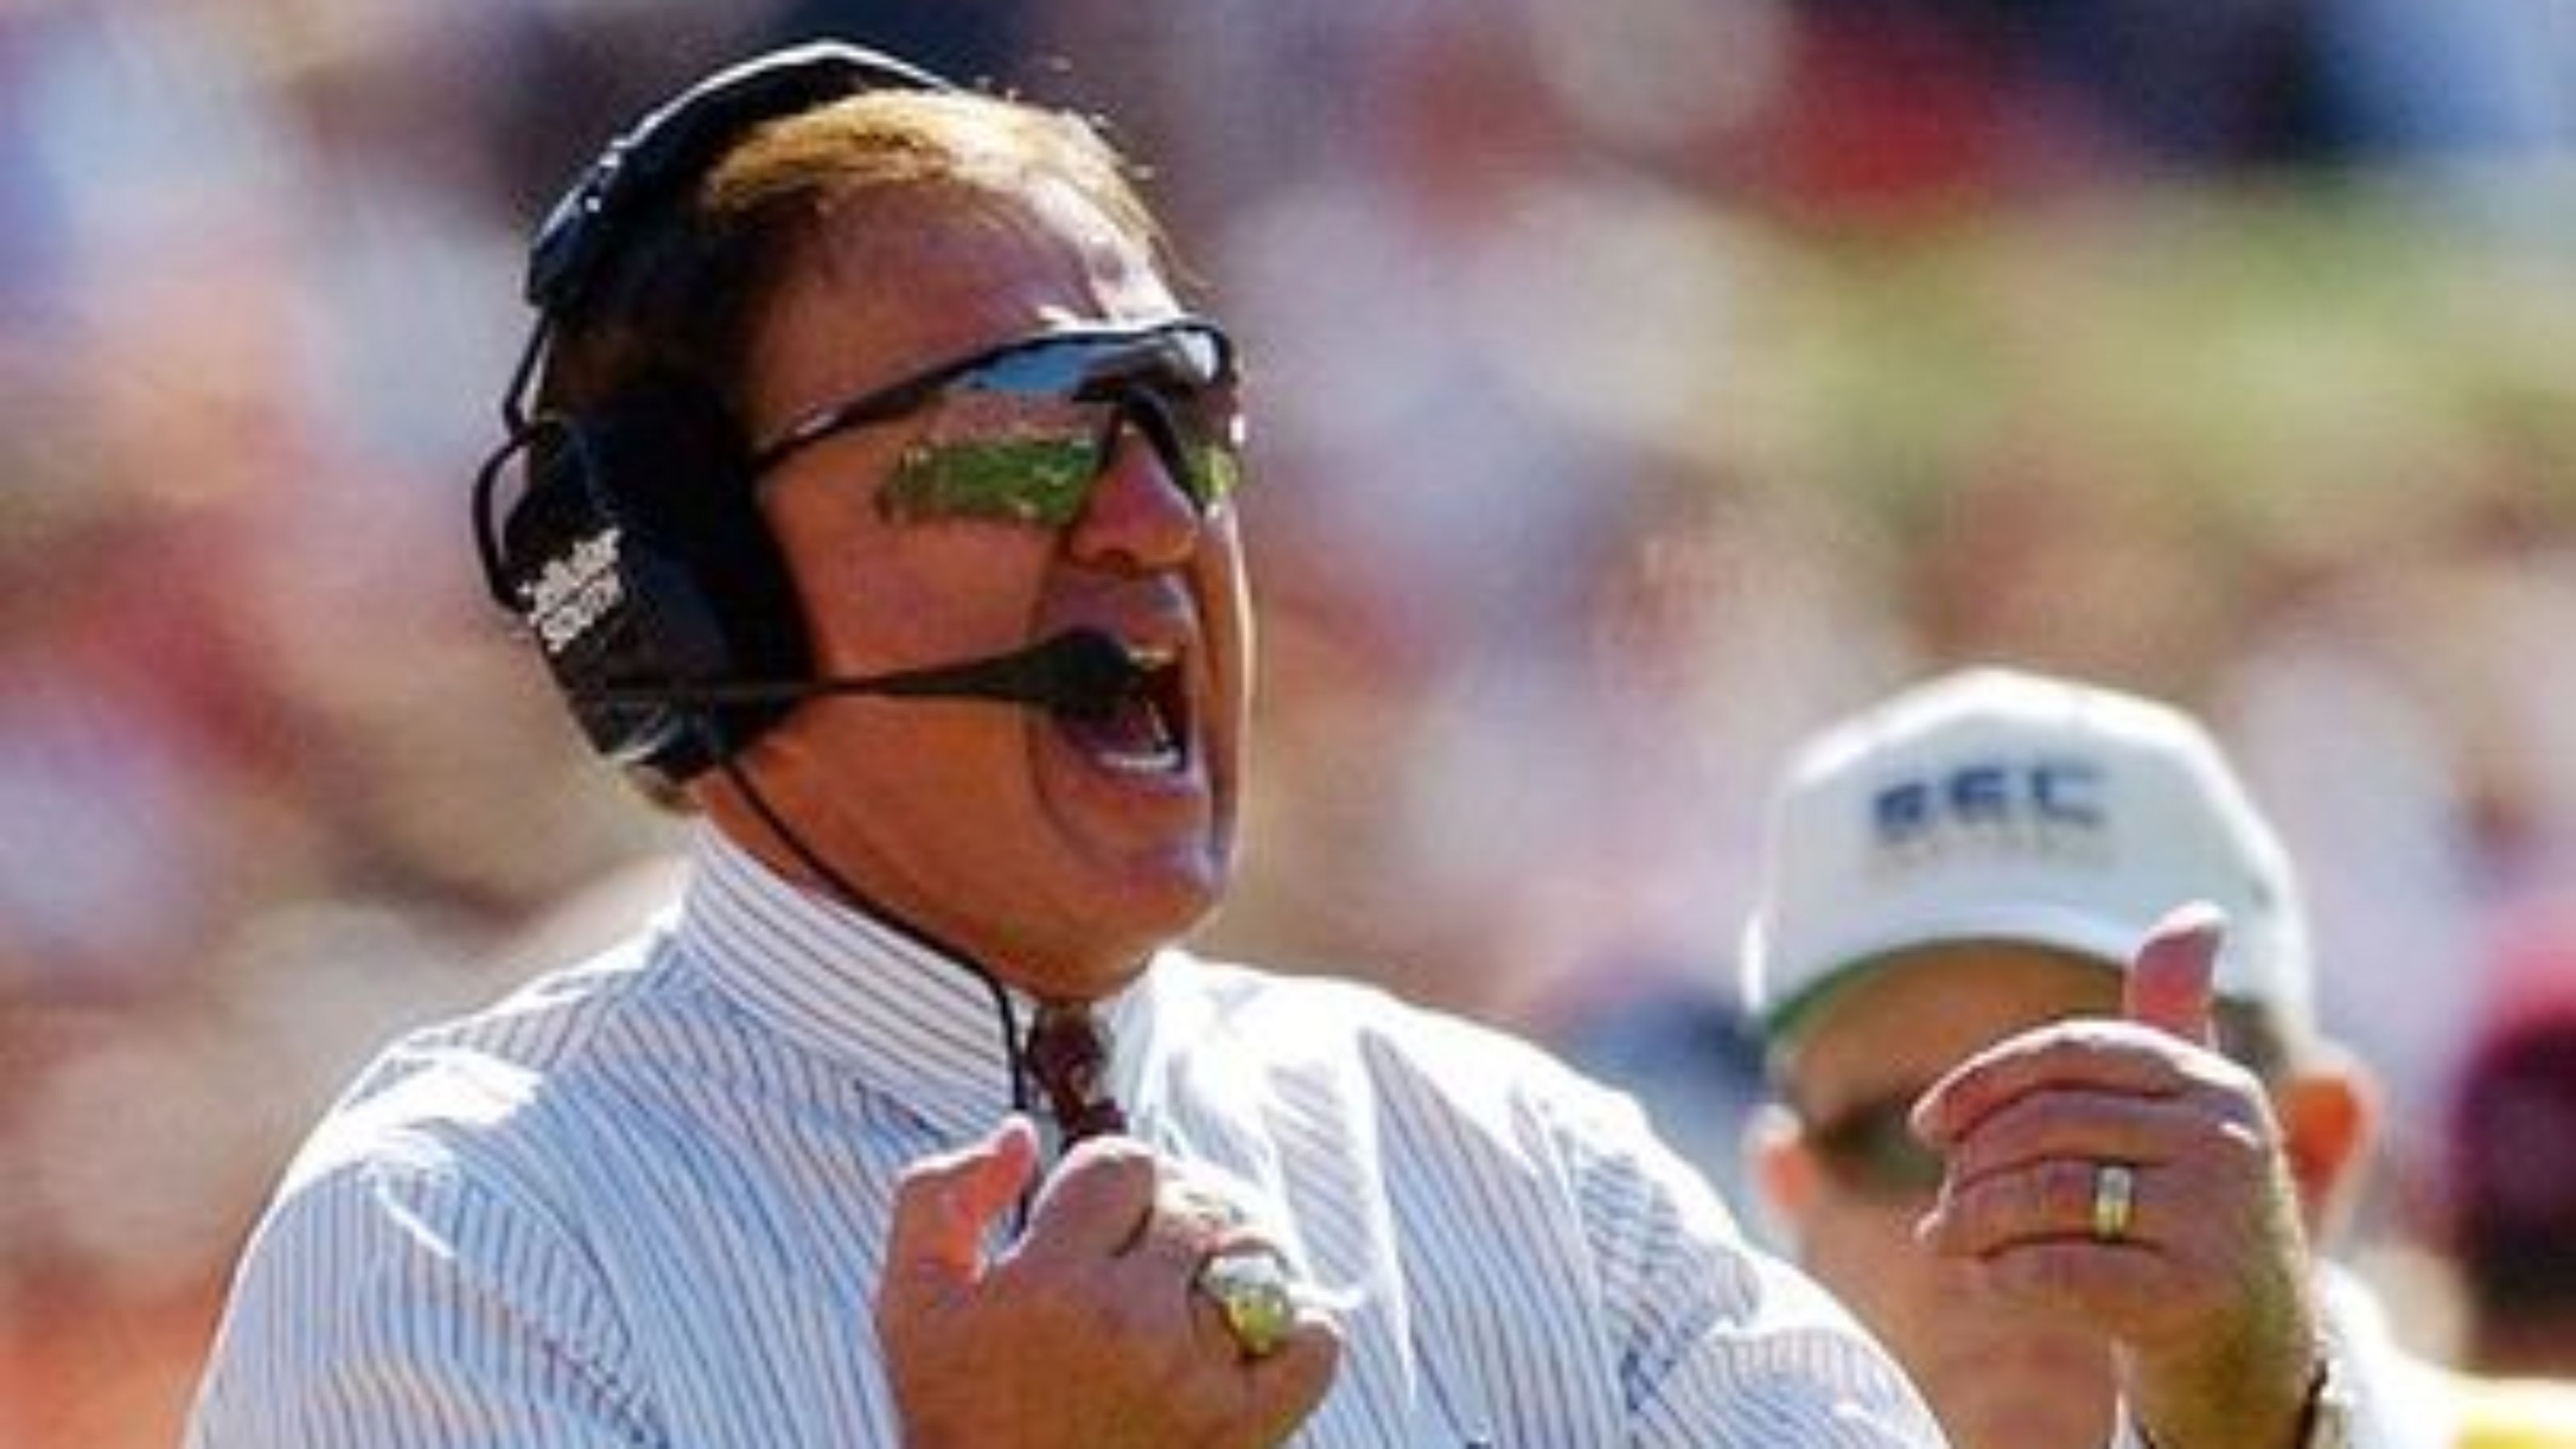 Former Mississippi State head coach Jackie Sherrill saw his 8-0 Bulldogs drop a 19-7 decision to Alabama in Tuscaloosa in 1999. Courtesy of the Montgomery advertiser